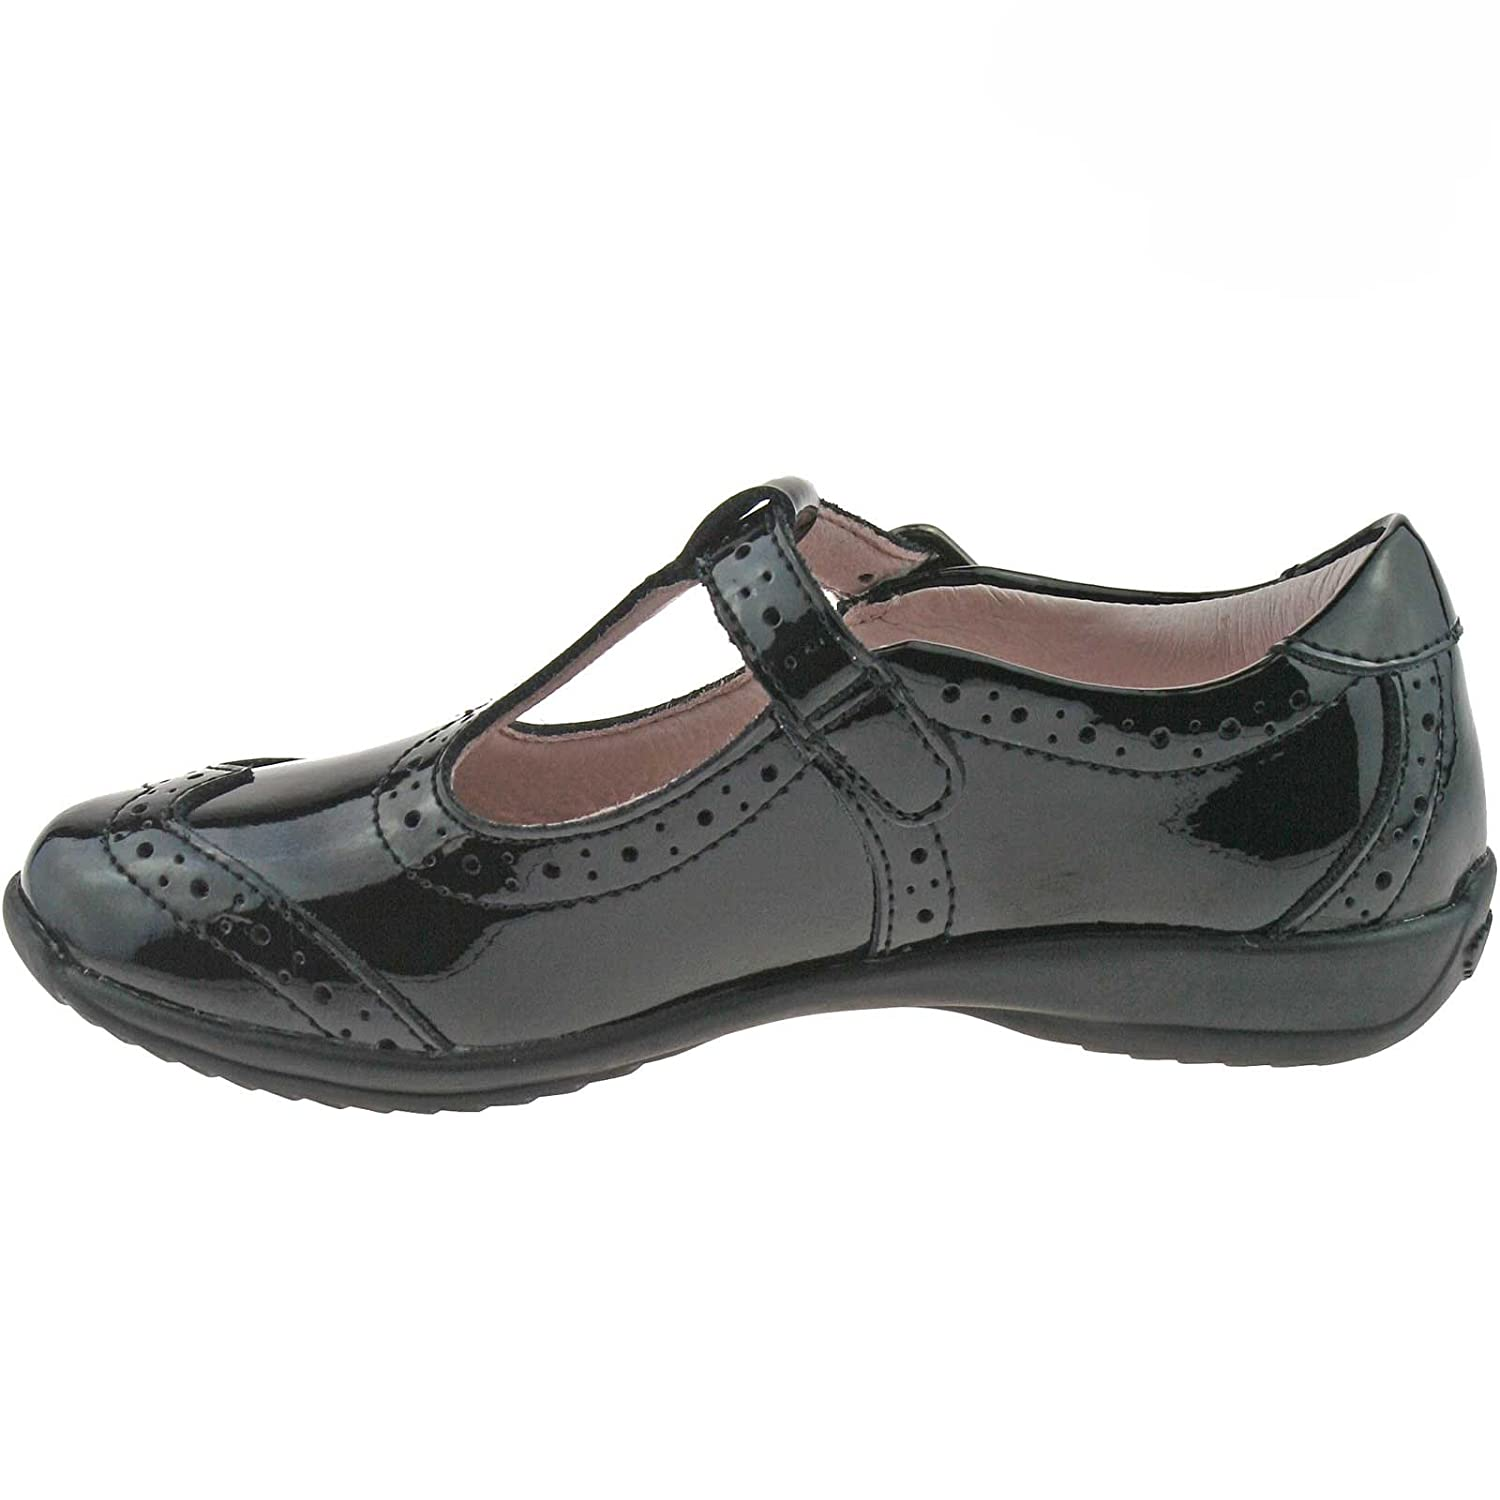 Lelli Kelly LK8216 (DB01) Jennette Black Patent T-Bar School Shoes F Width-32 (UK 13) gLGaO8Z